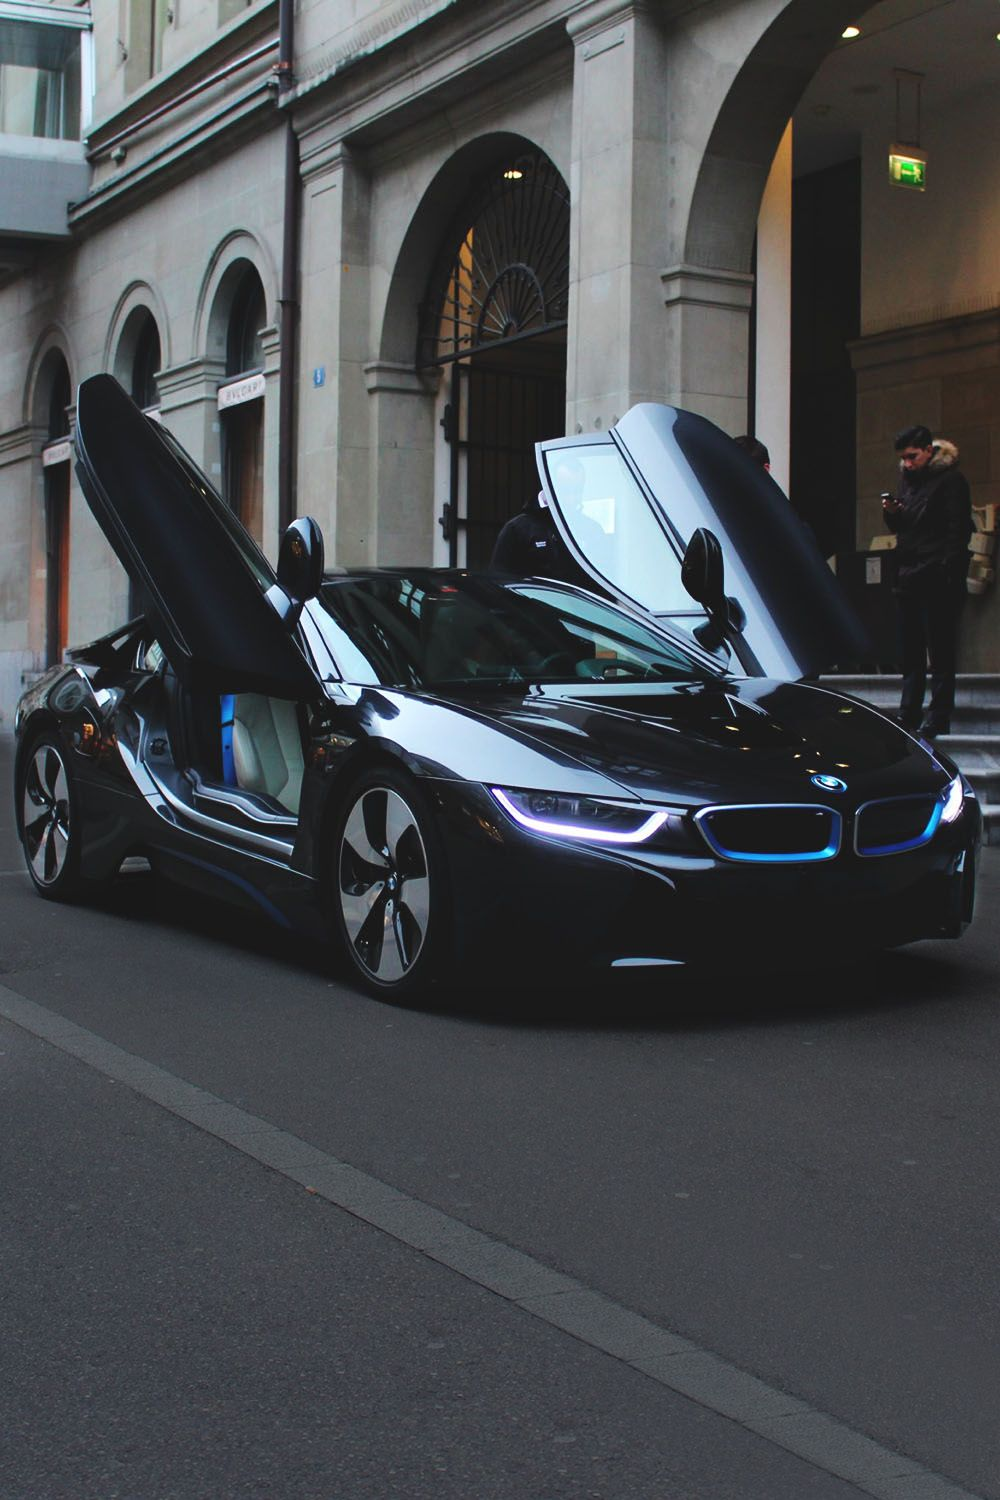 Cool car toys  BMW i  Really Fast Toys  Pinterest  Bmw i BMW and Cars